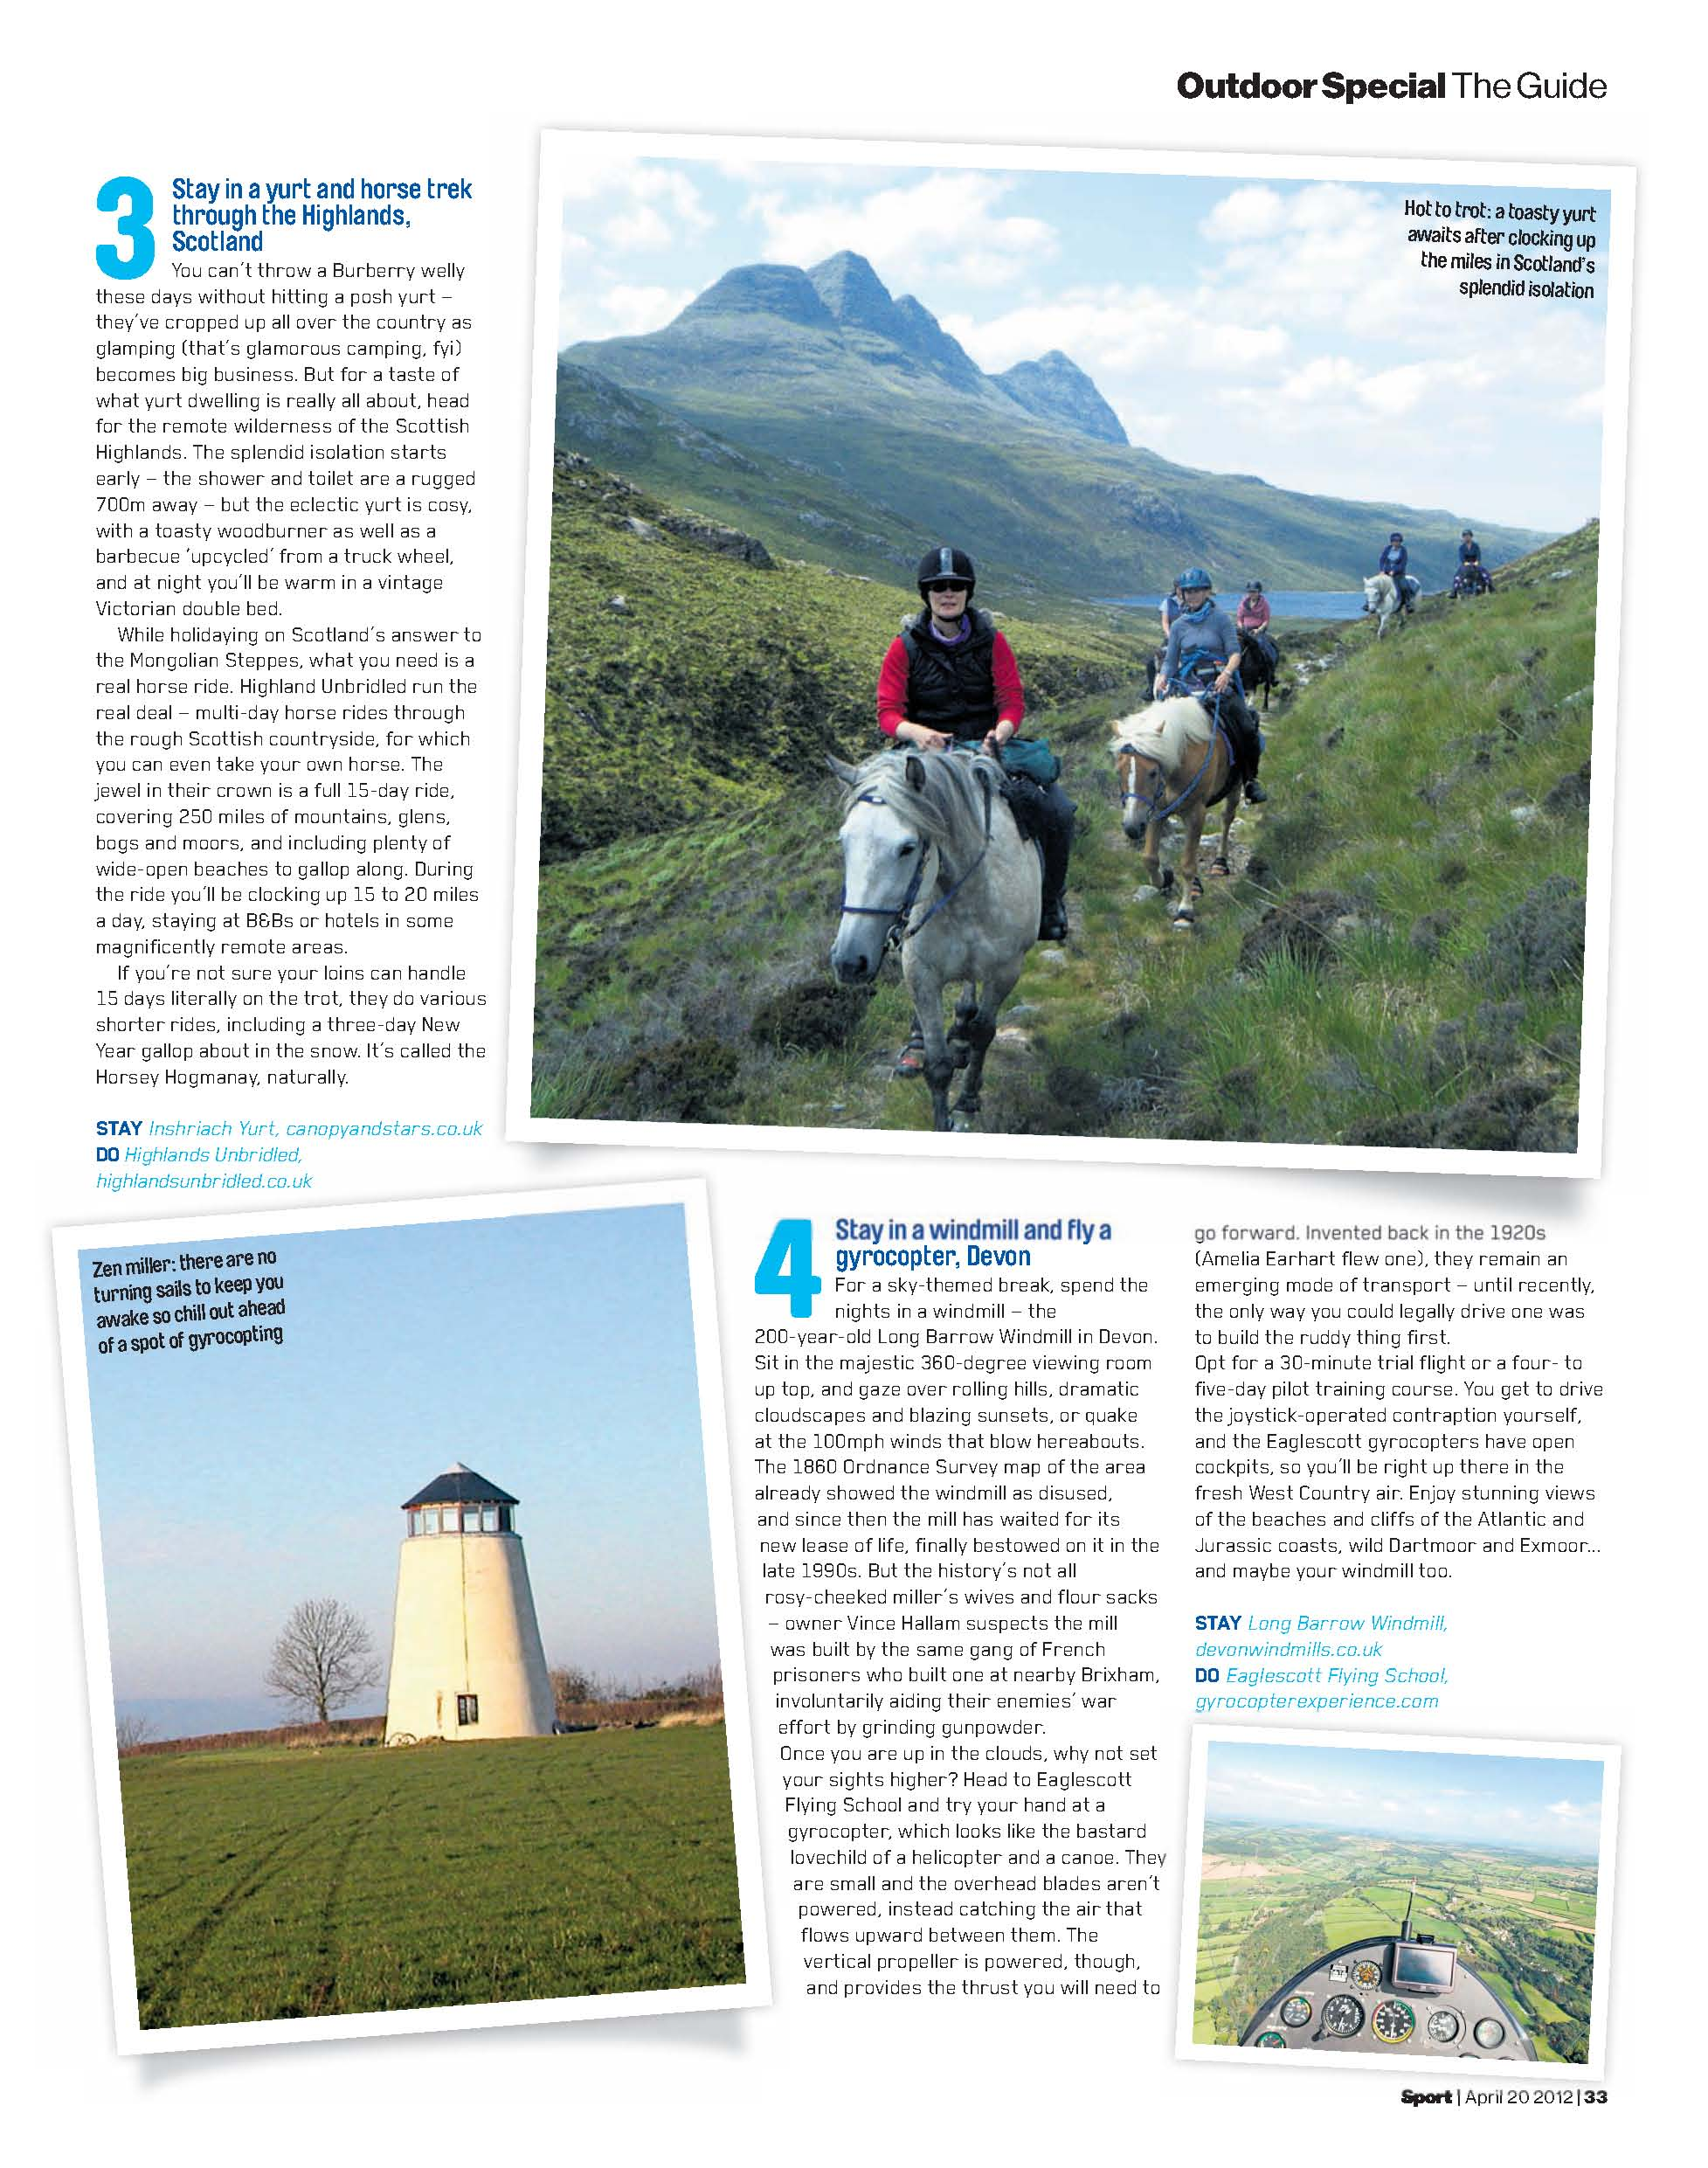 Summer outdoor section in Sport magazine #1